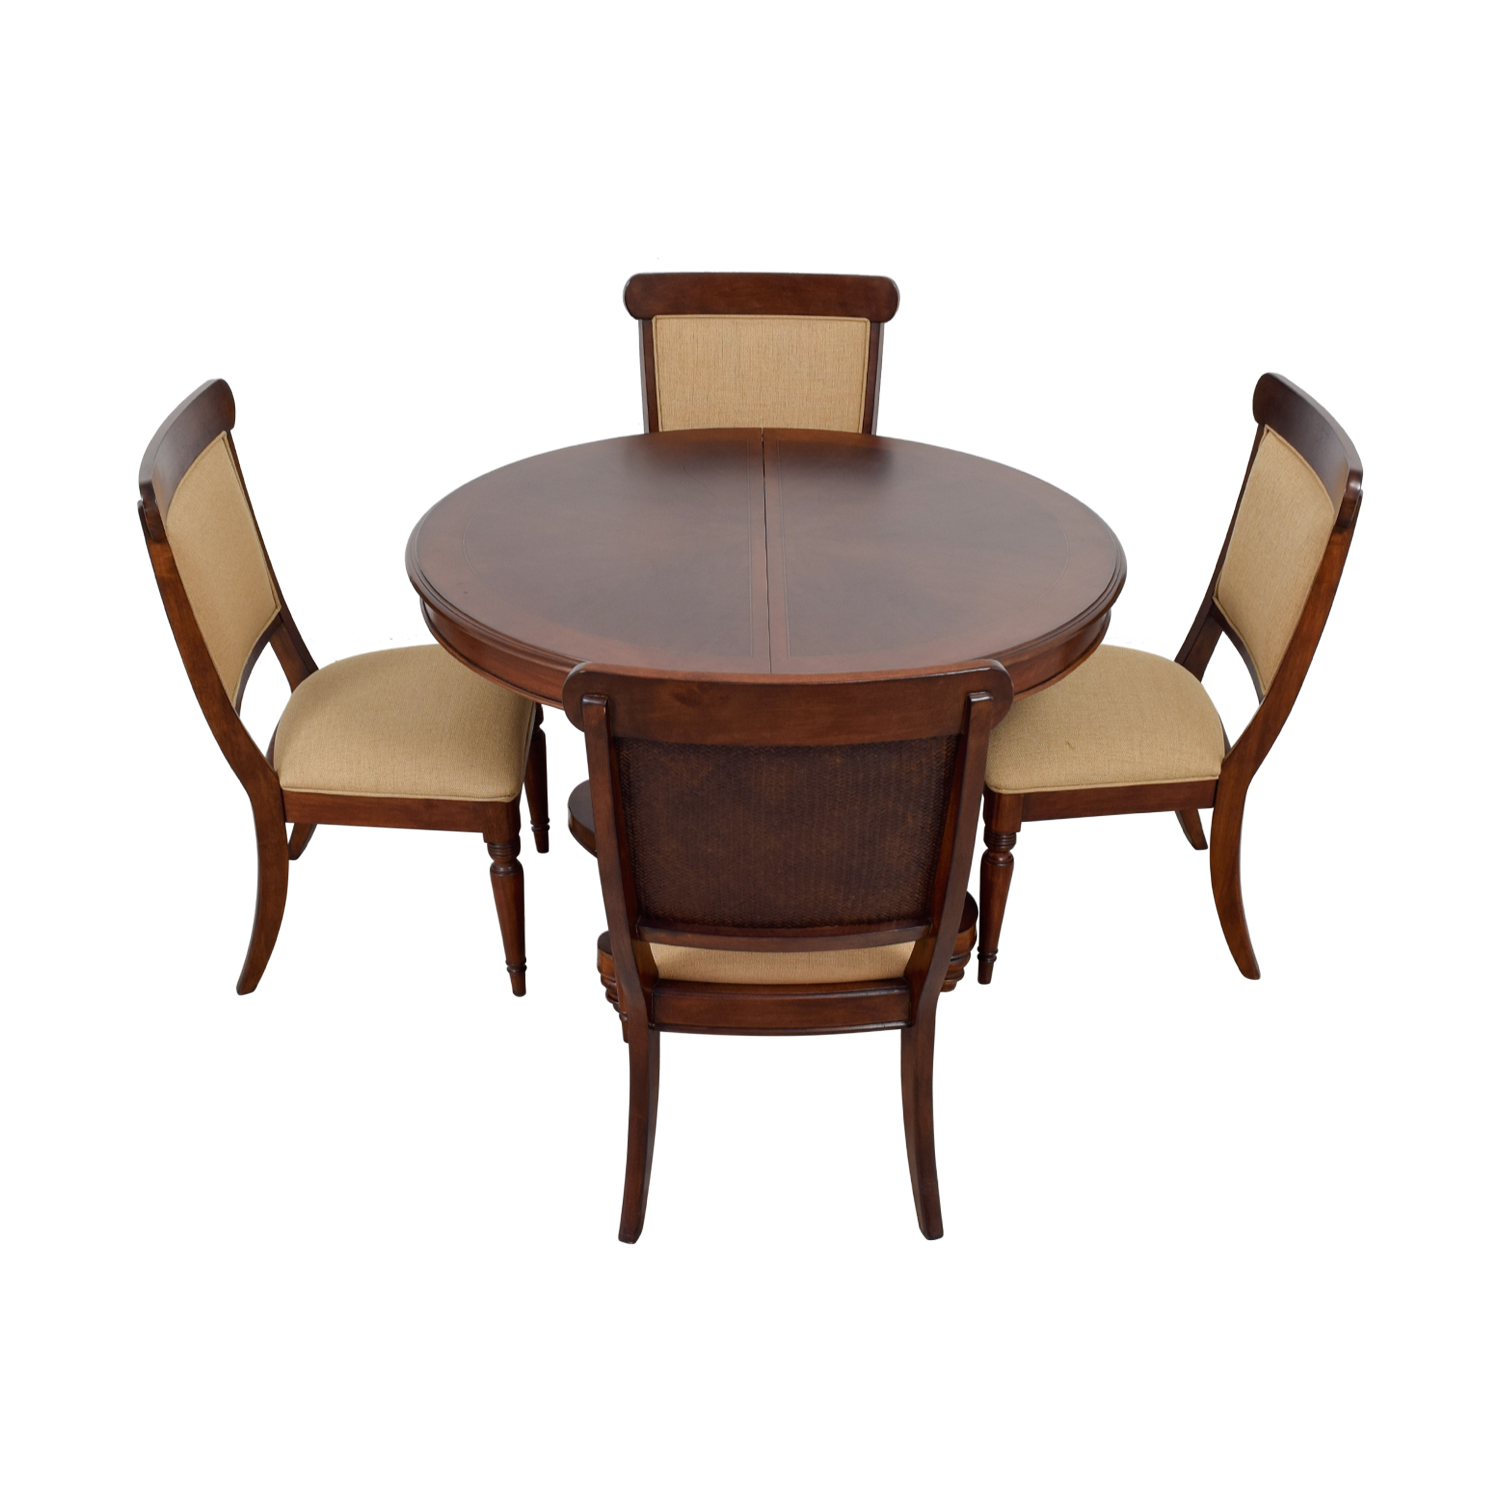 Genial Buy Macyu0027s Wood Extendable Dining Set With Upholstered Chairs Macyu0027s Dining  Sets